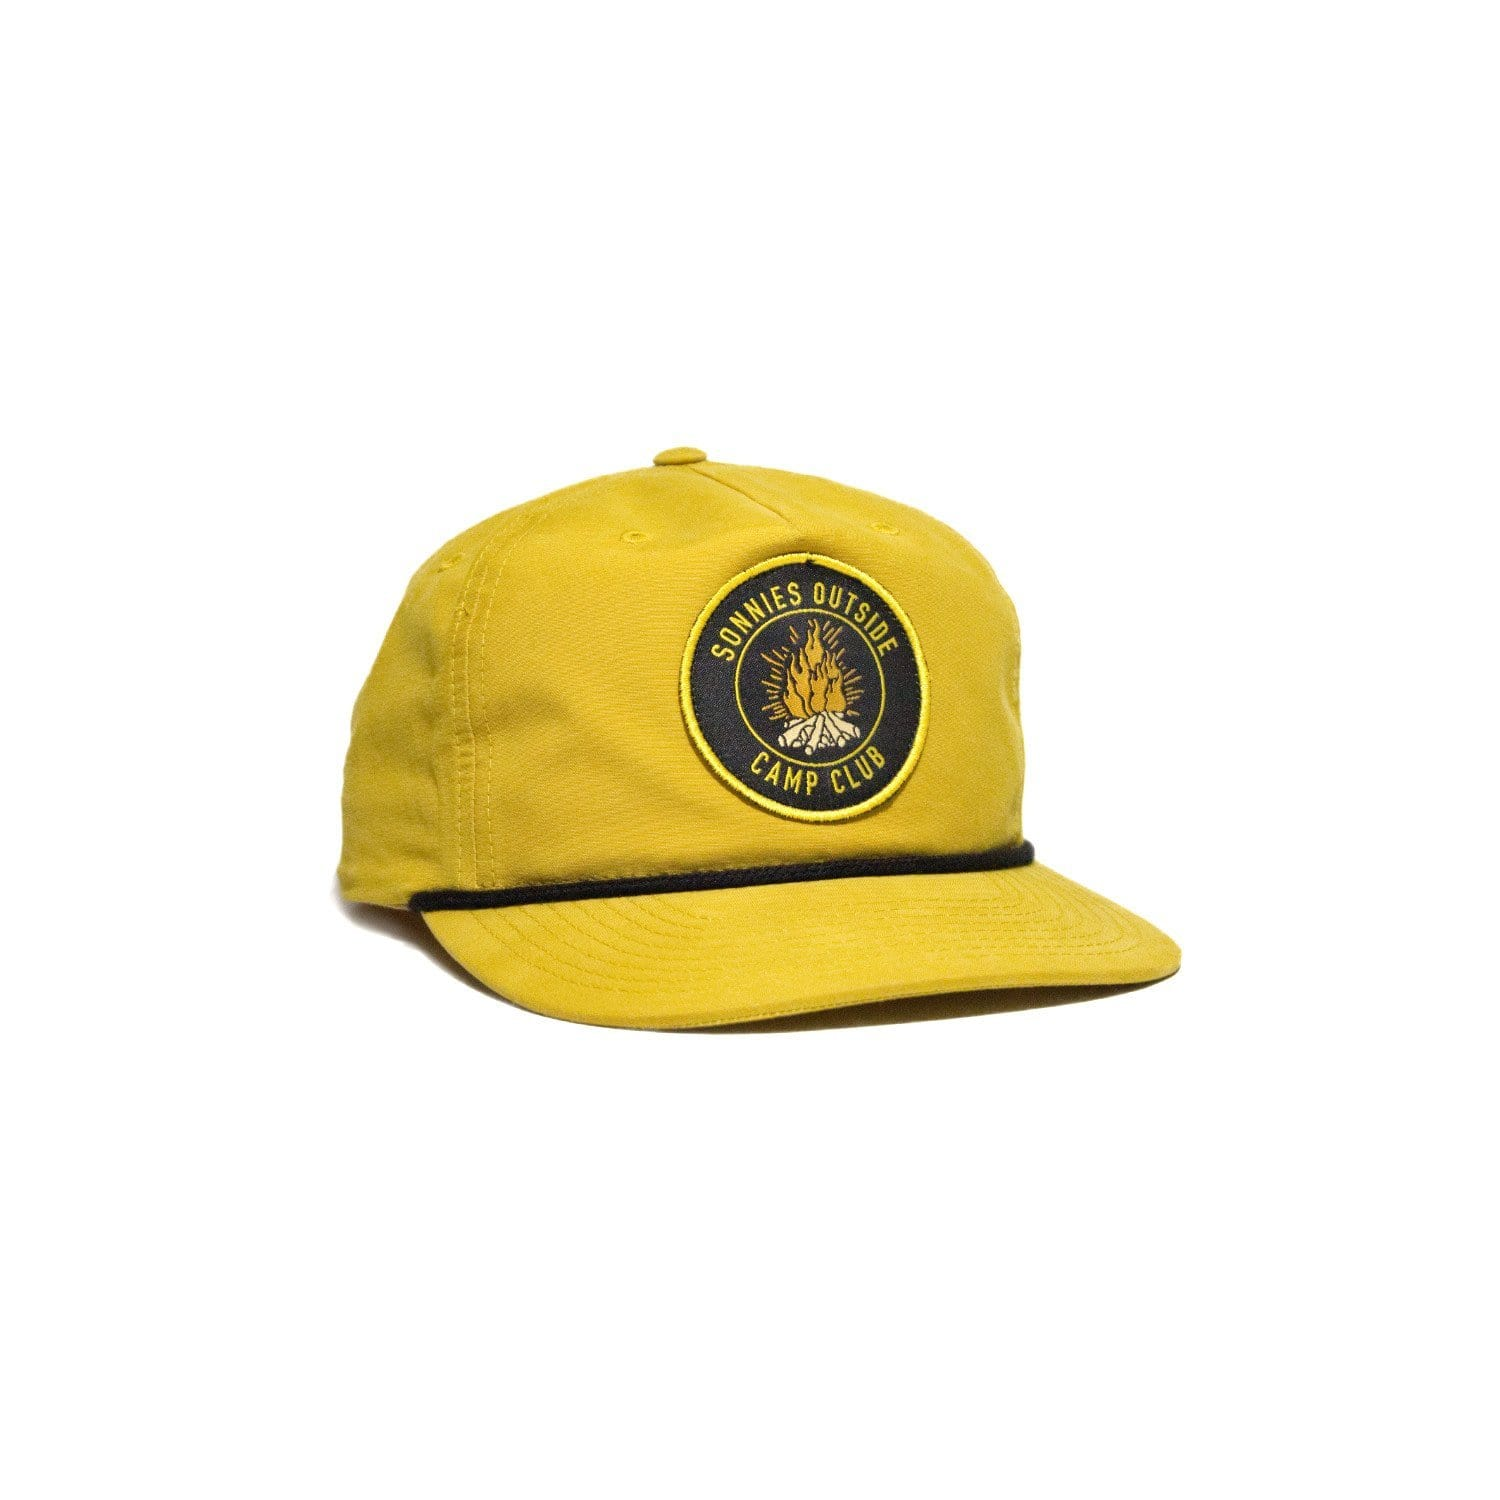 Sonnies Outside Yellow Snapback Roper Hat Cap